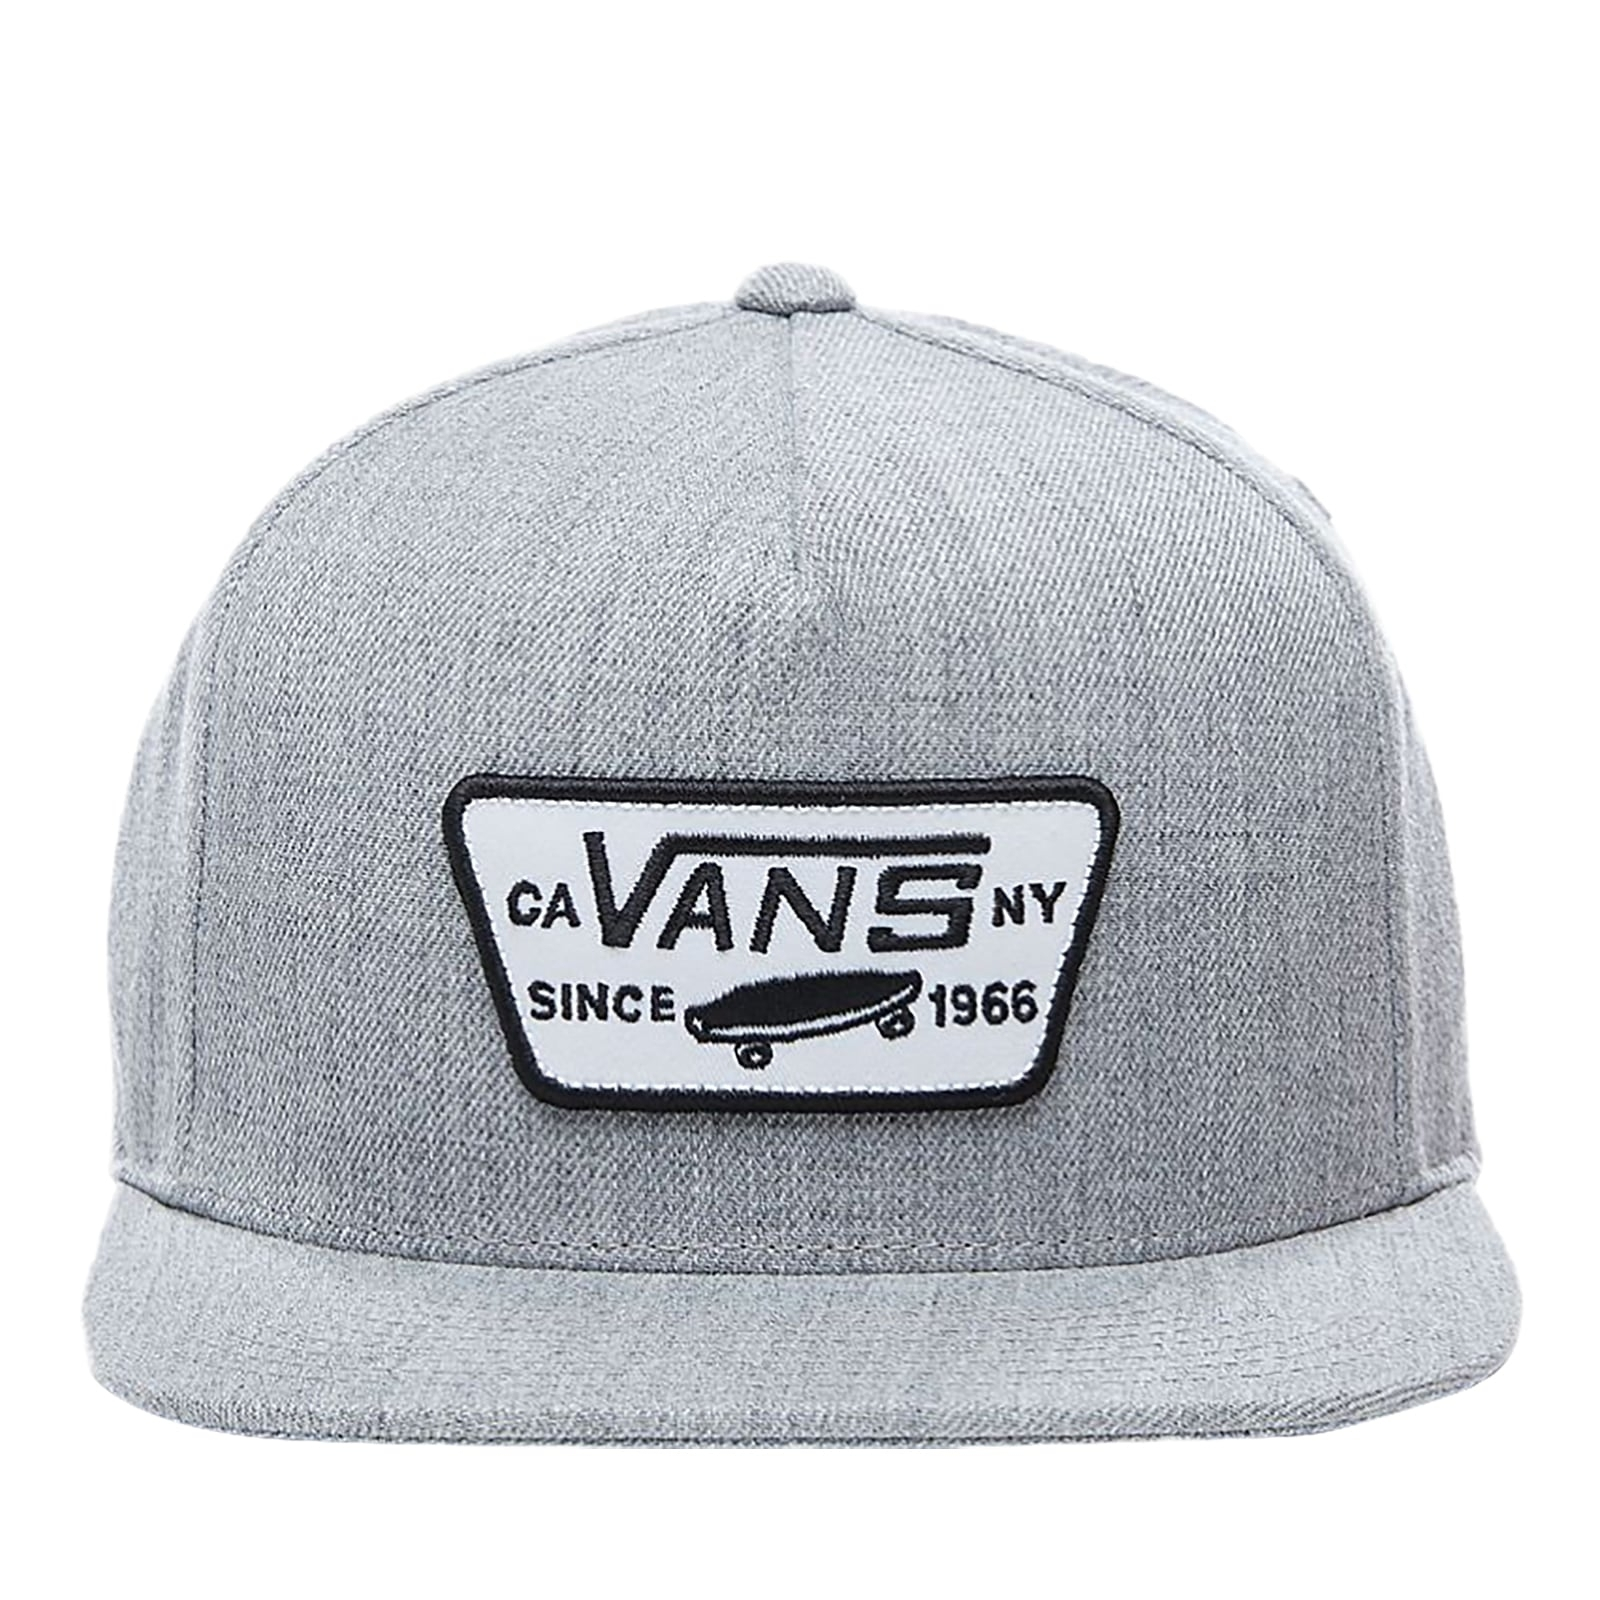 Vans šiltovka FULL PATCH SNAP heather grey